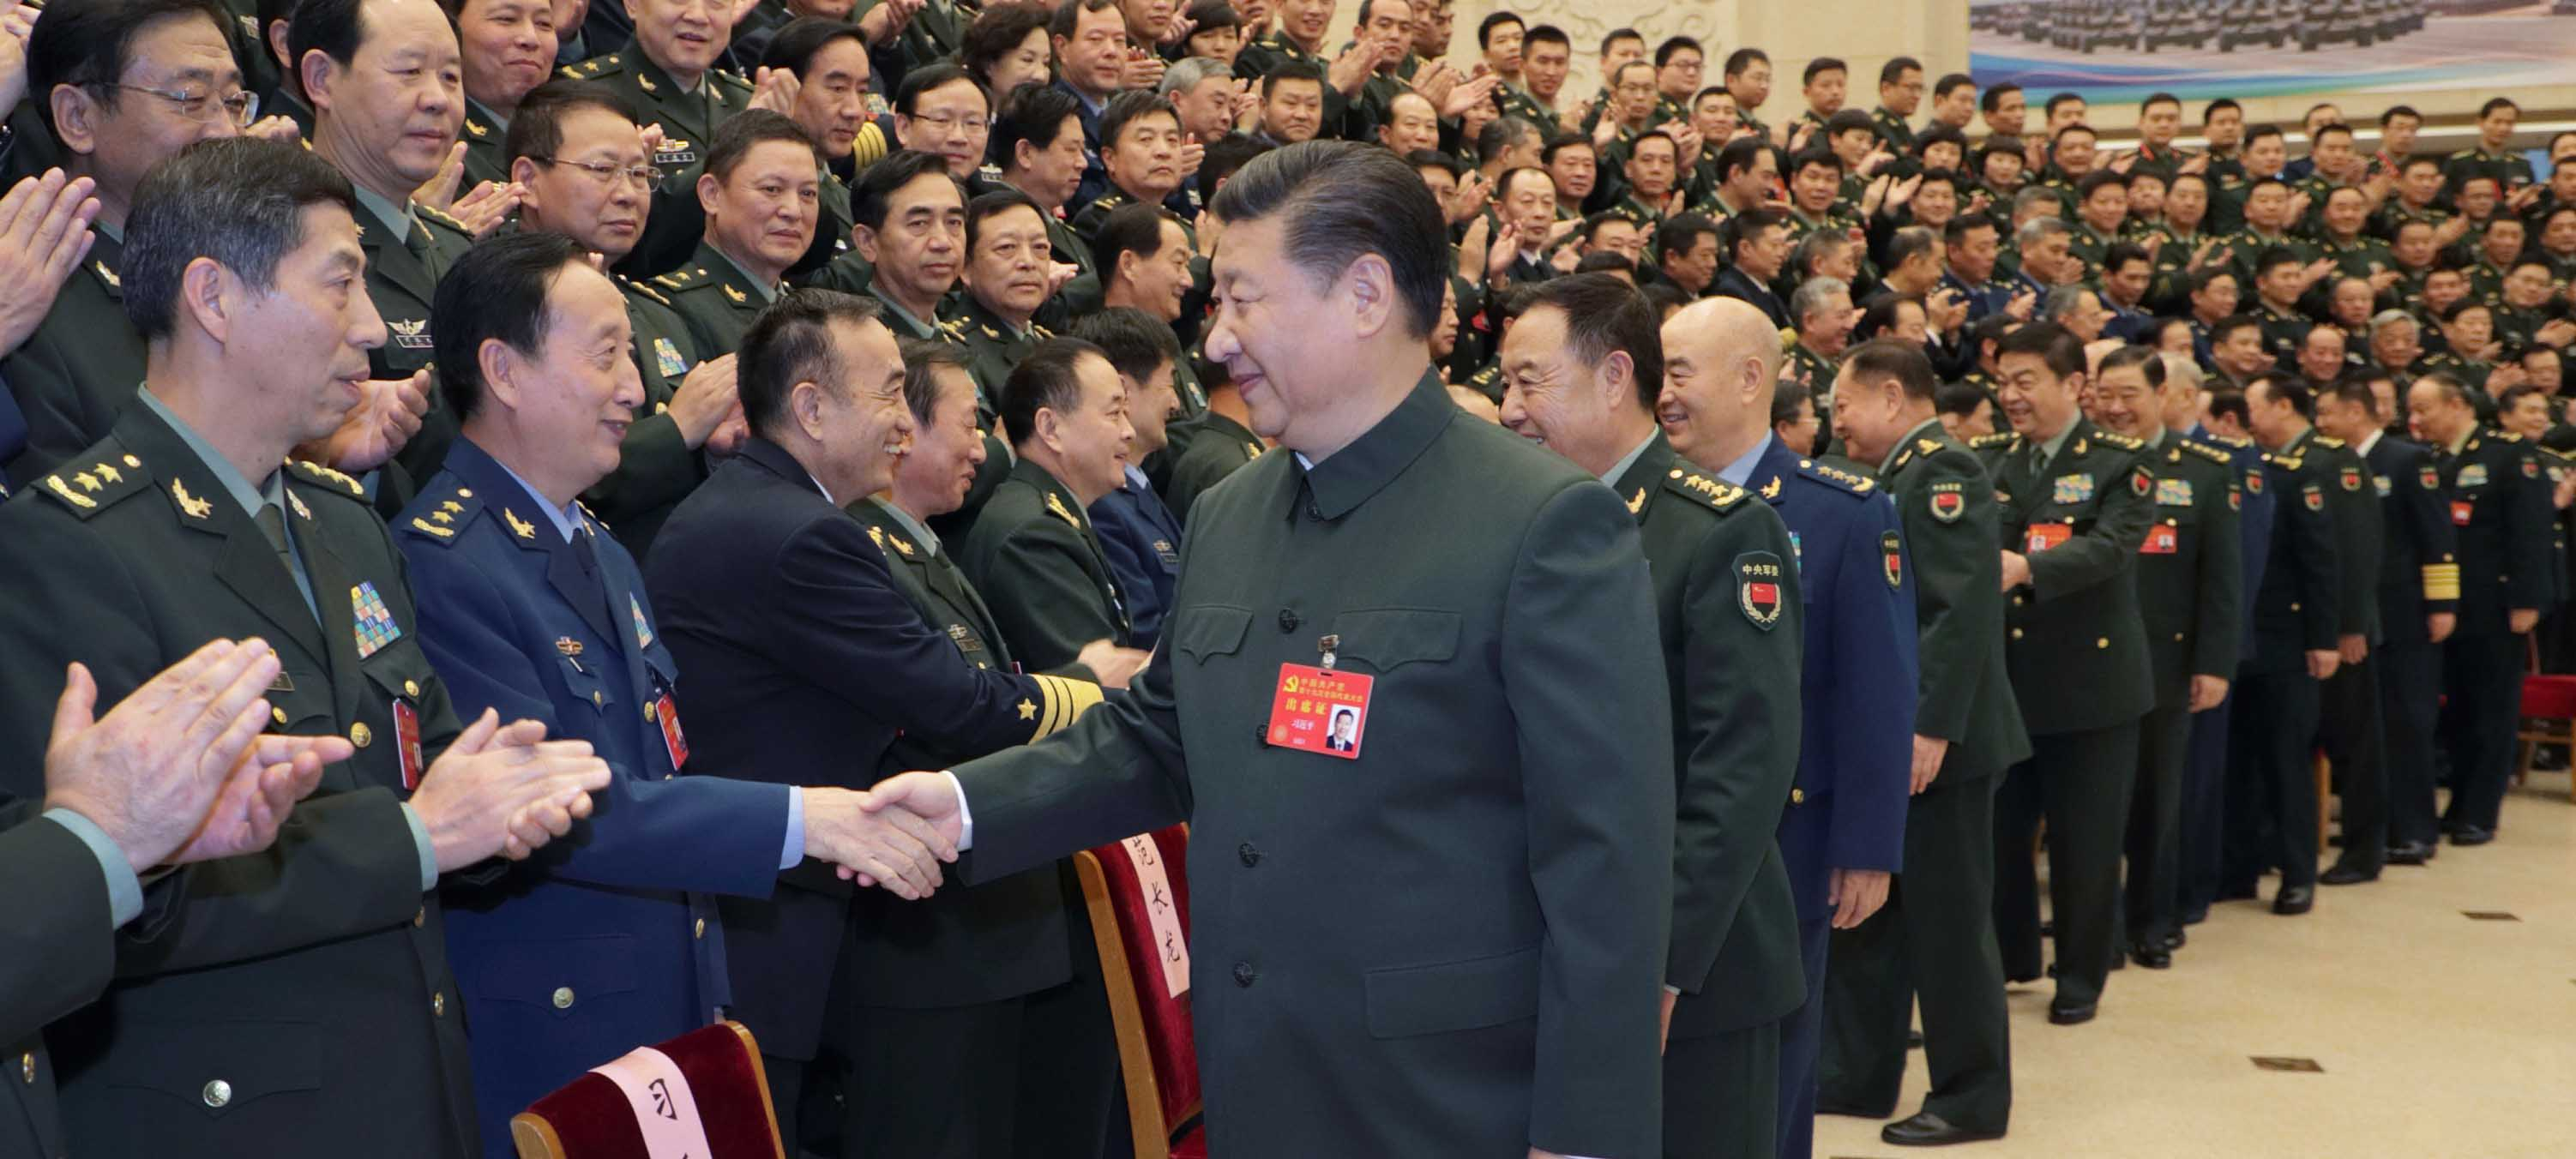 Xi calls for building a strong army